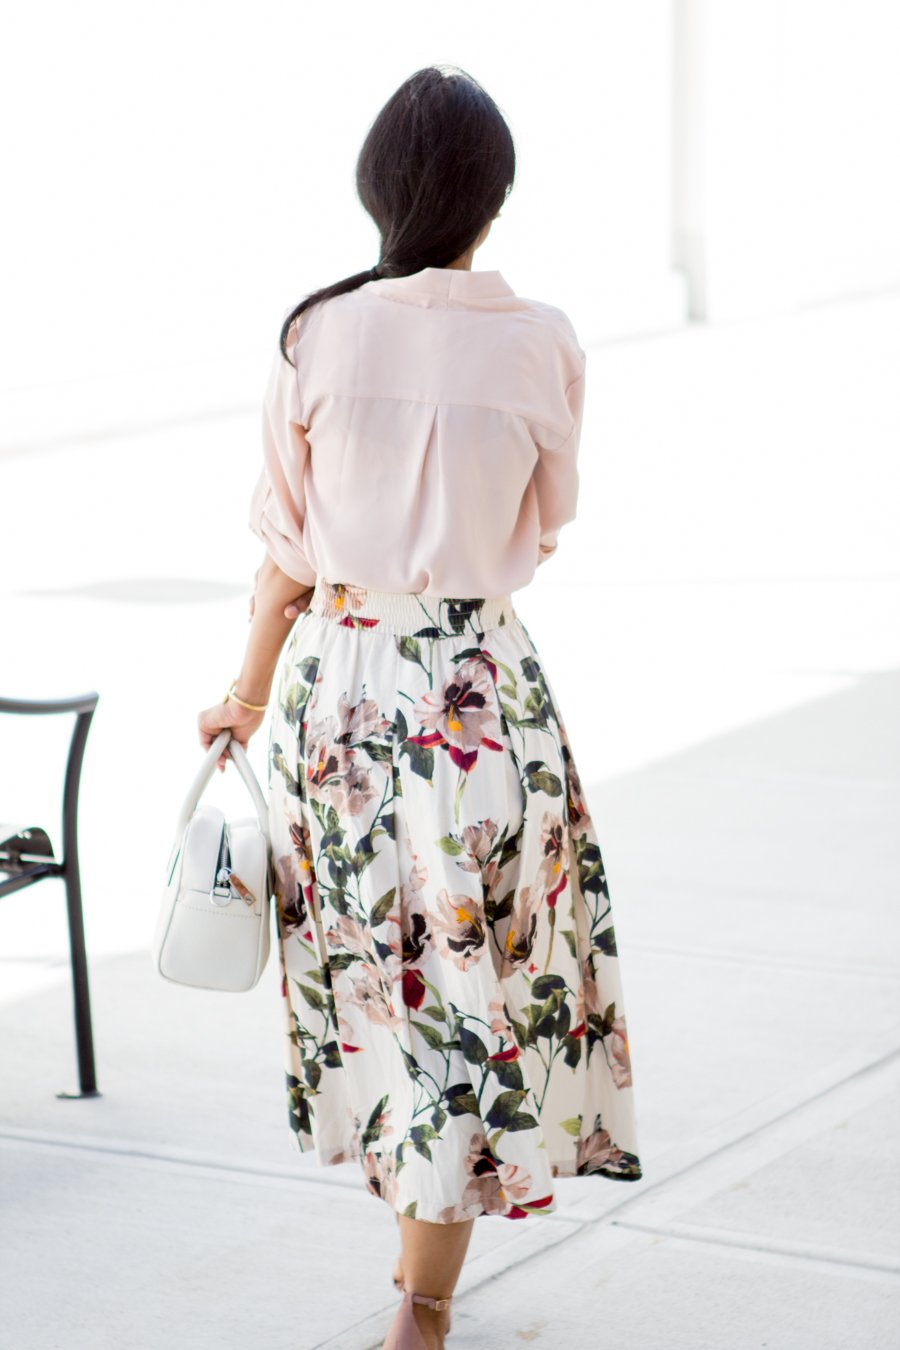 floral skirt, vince camuto, neutral sandals, dressy outfit, work outfit, work style, petite style, fashion tips, style tips, light pink, zara, target style, office wear, corporate chic, boss woman, power dressing